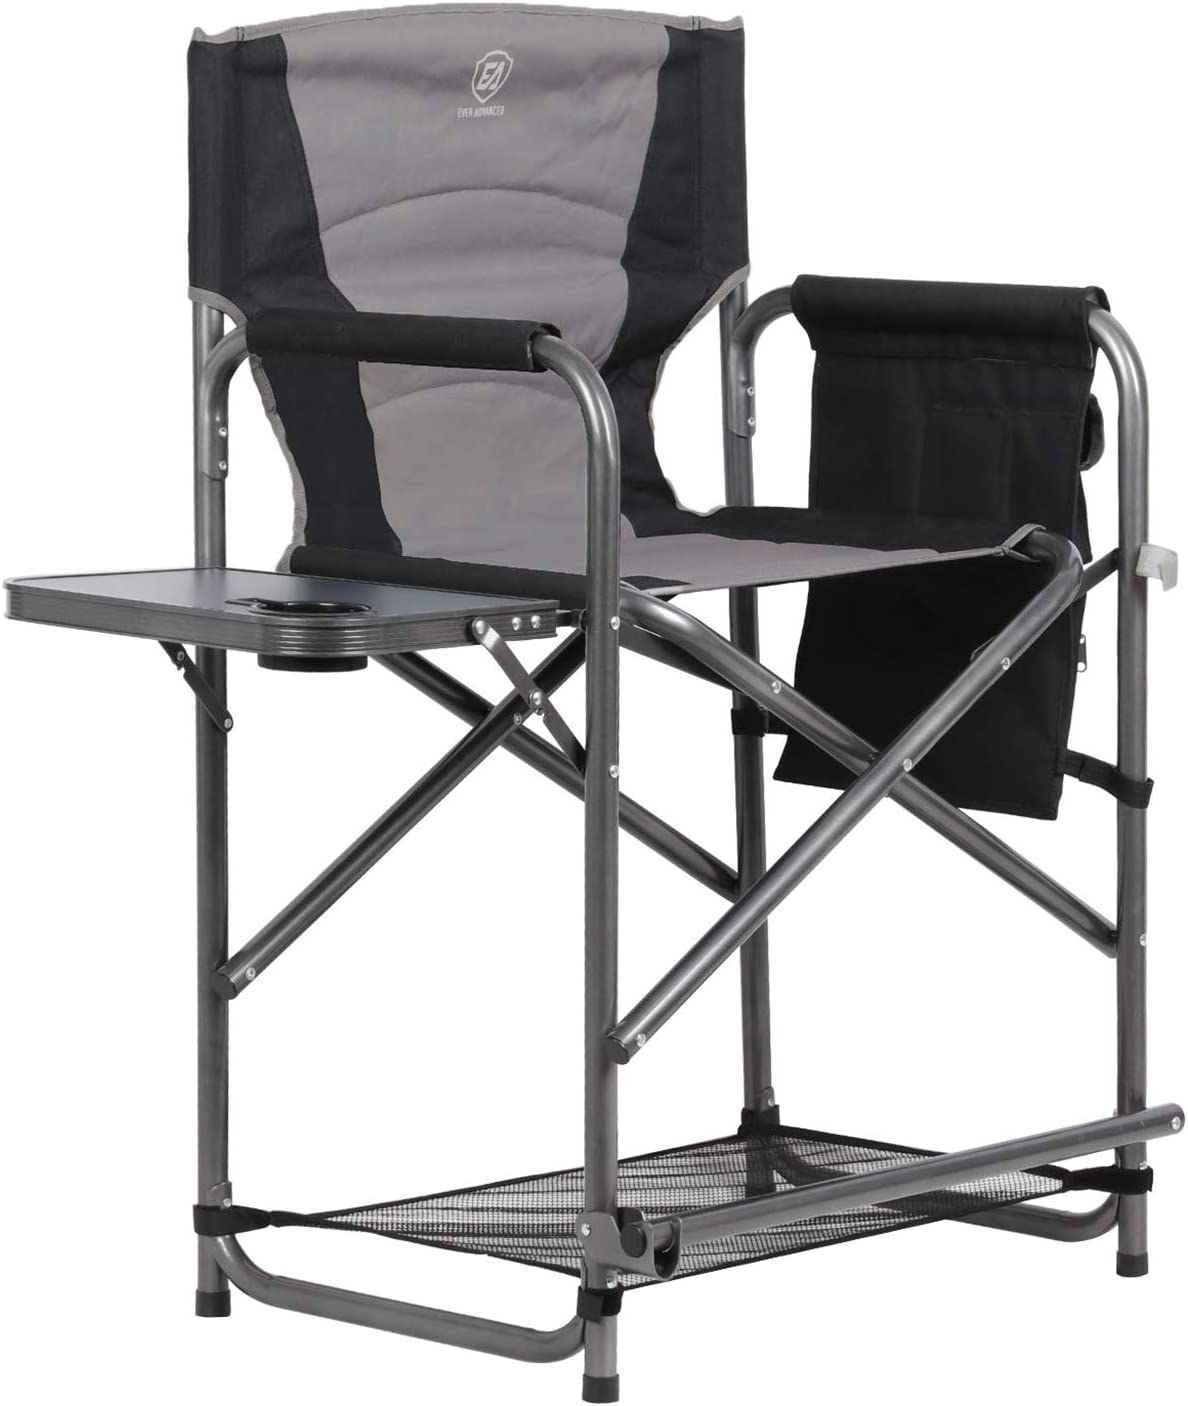 Ever Advanced Director's Chair